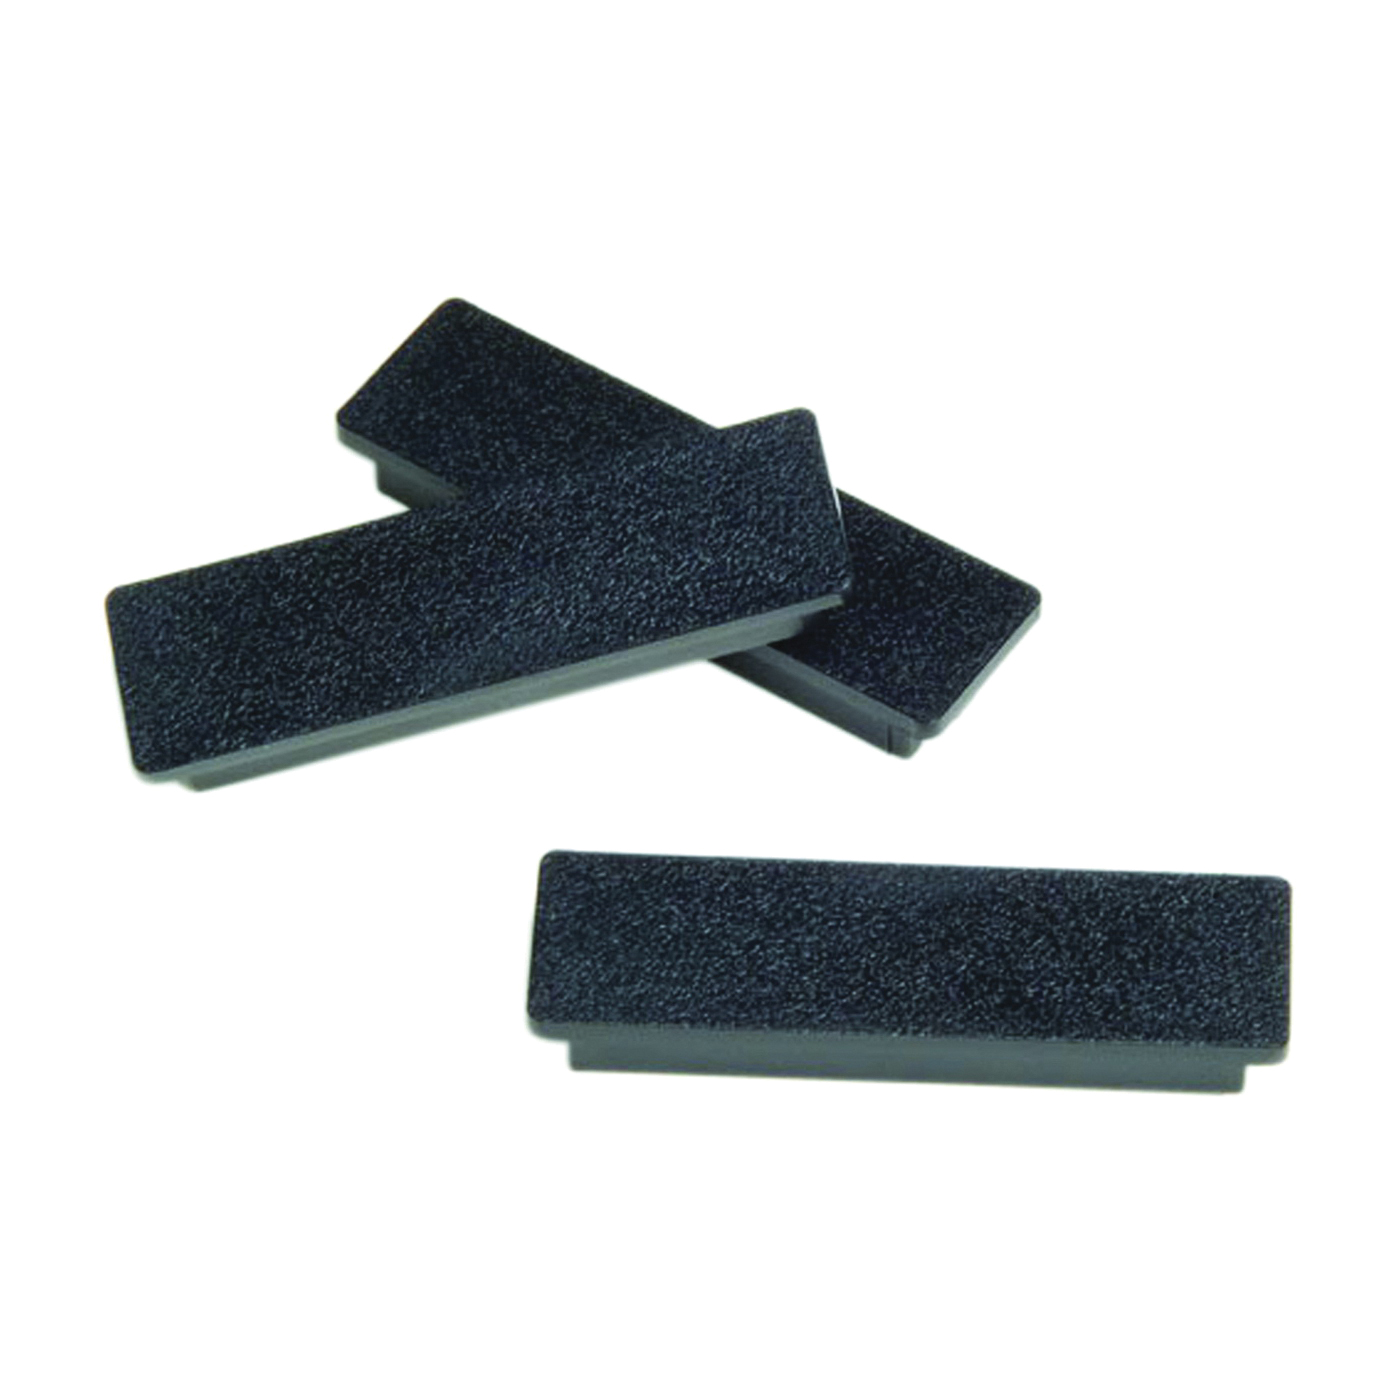 Picture of Square D Homeline QOFPCP Filler Plate, 3 in L, 1-1/2 in W, For: QO Load Centers